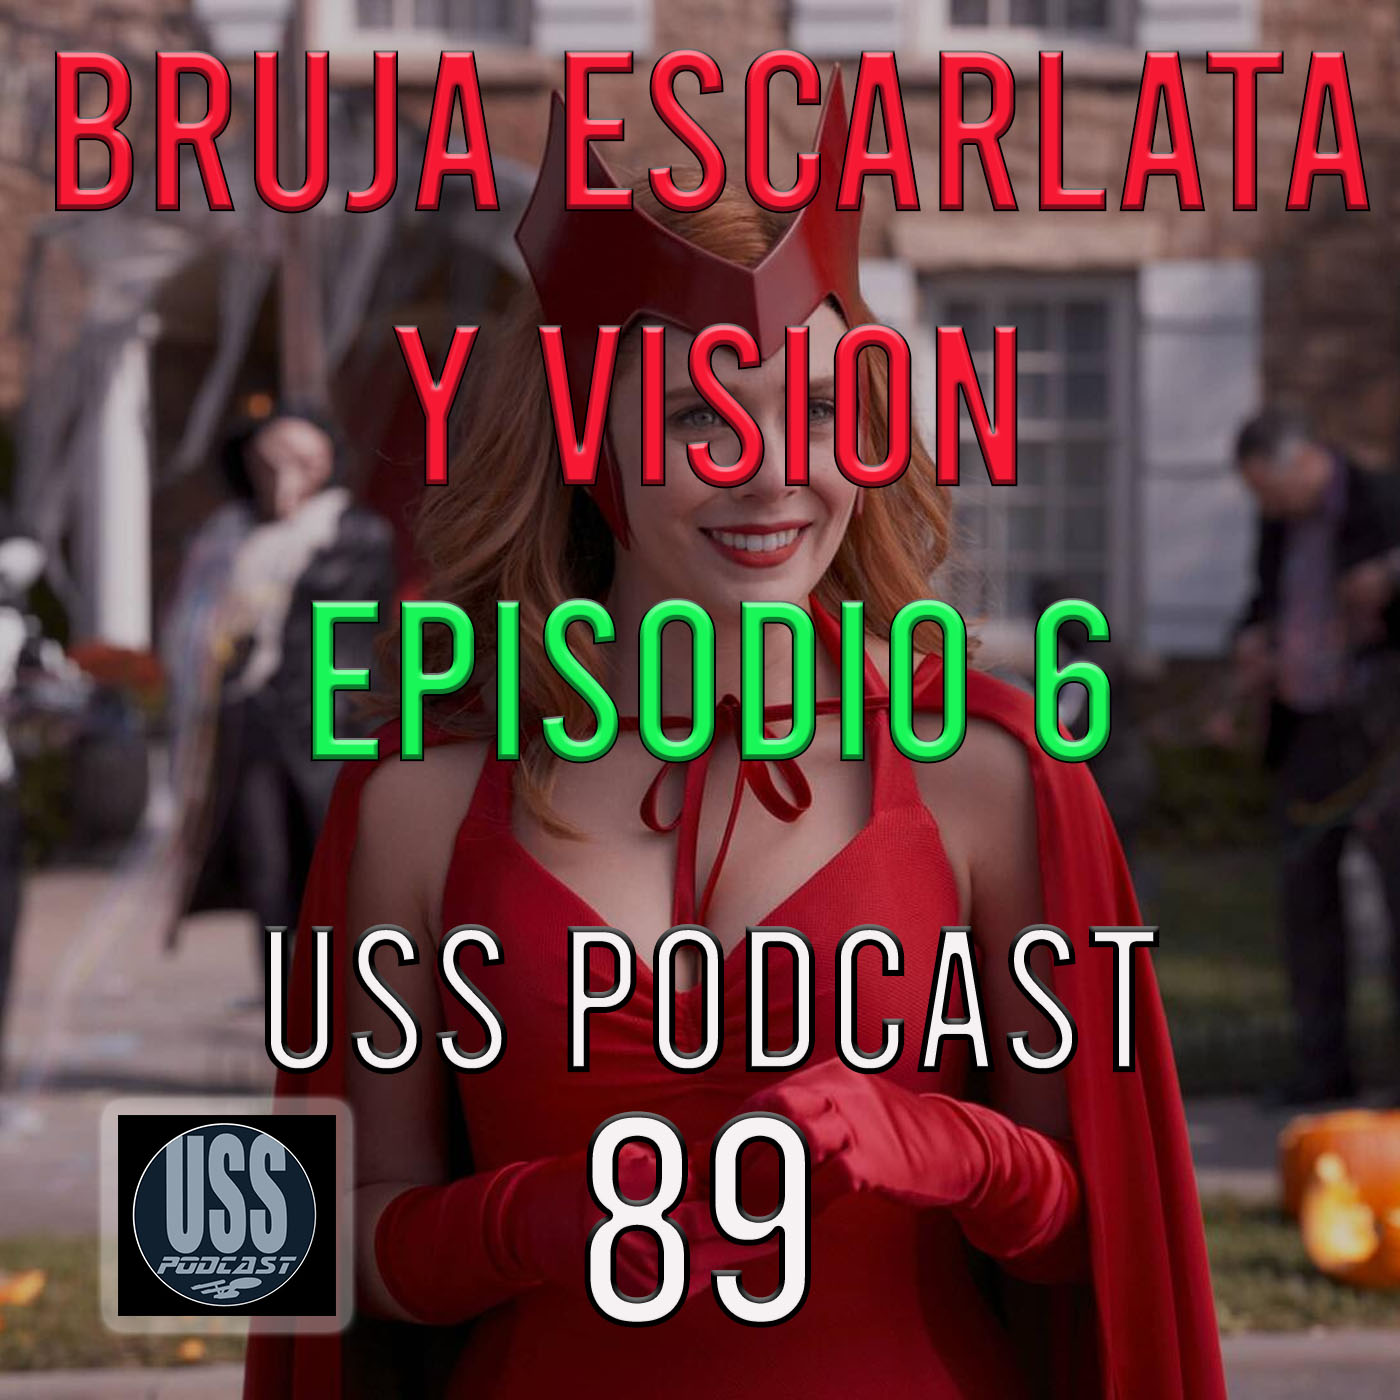 Bruja Escarlata y Vision Episodio 6 USS Podcast 89